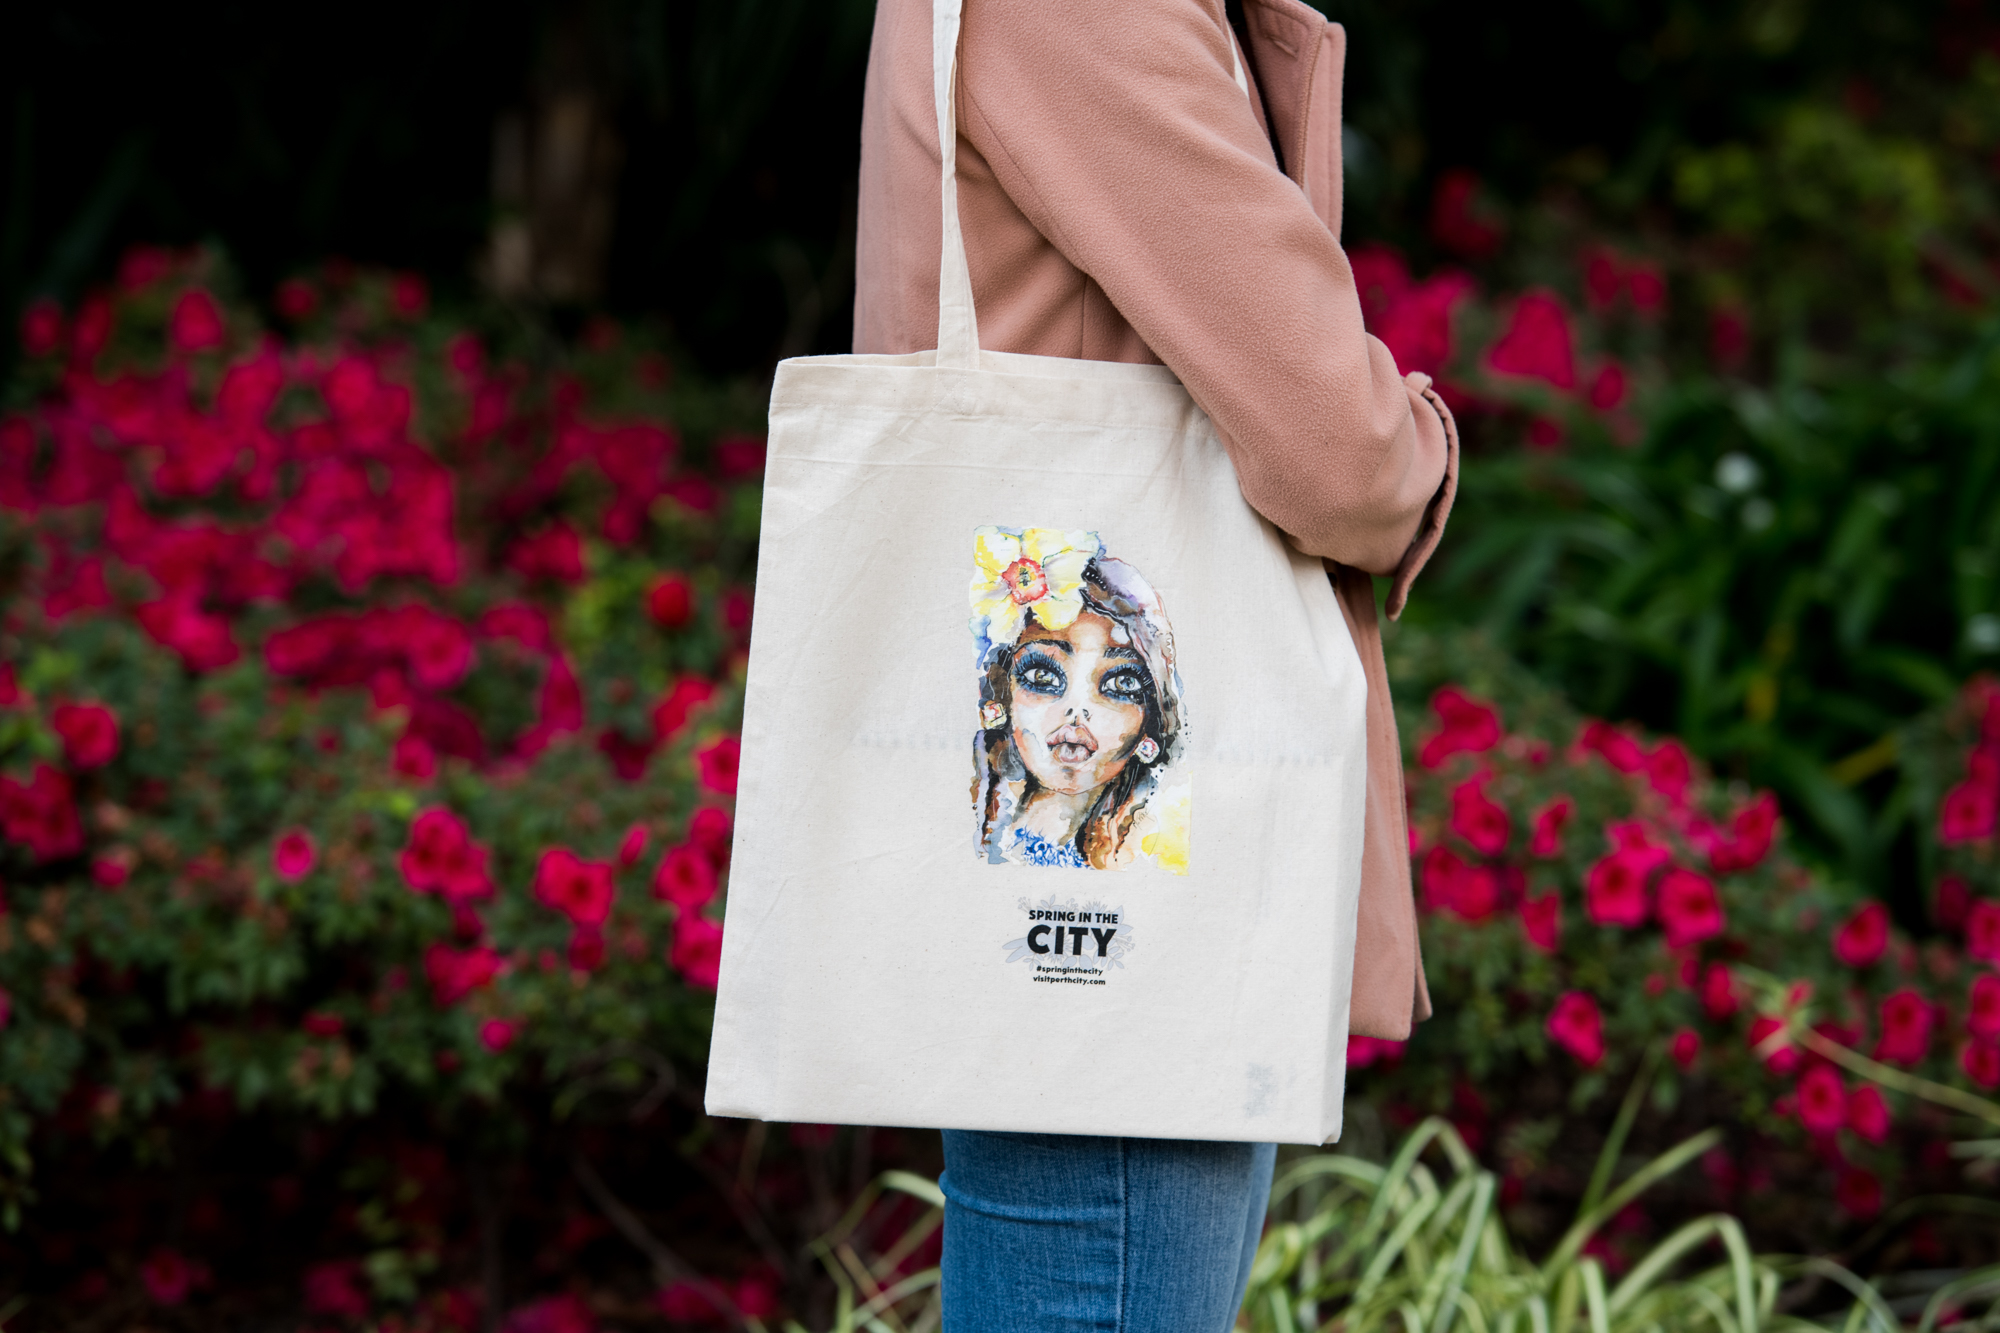 Person holding tote bag